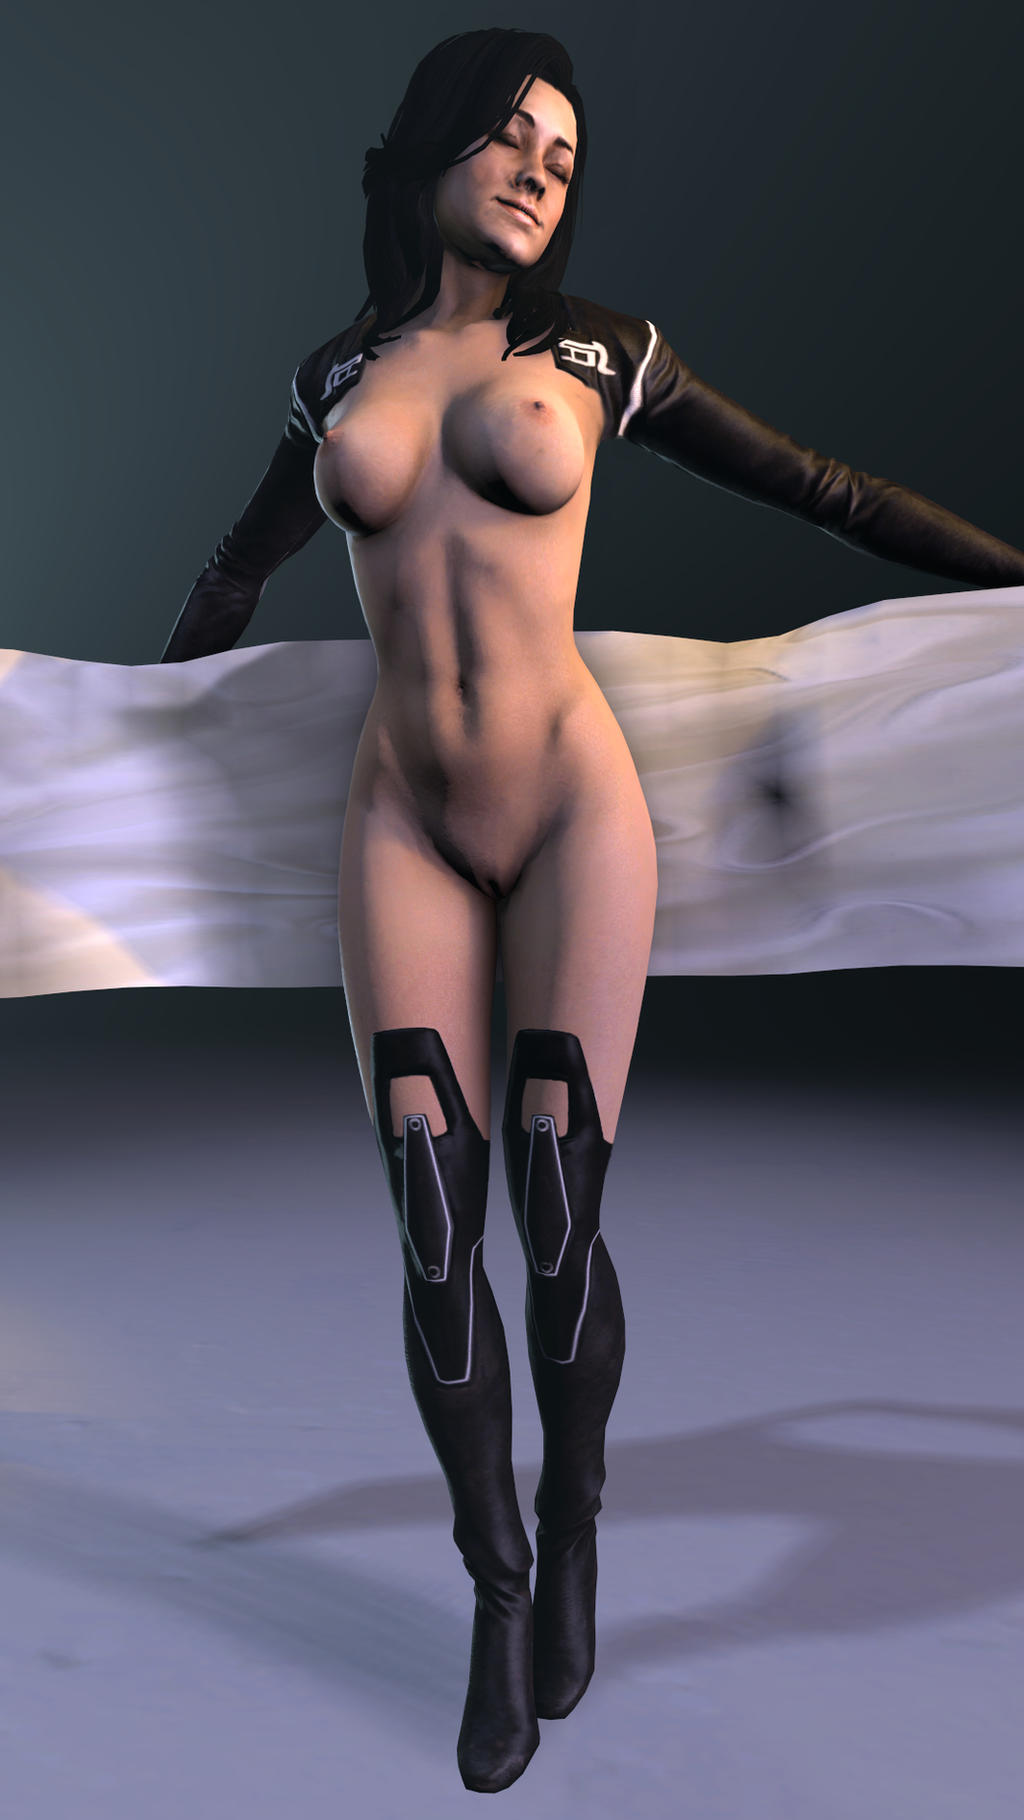 3d miranda lawson039s ass is really nice futanari 2